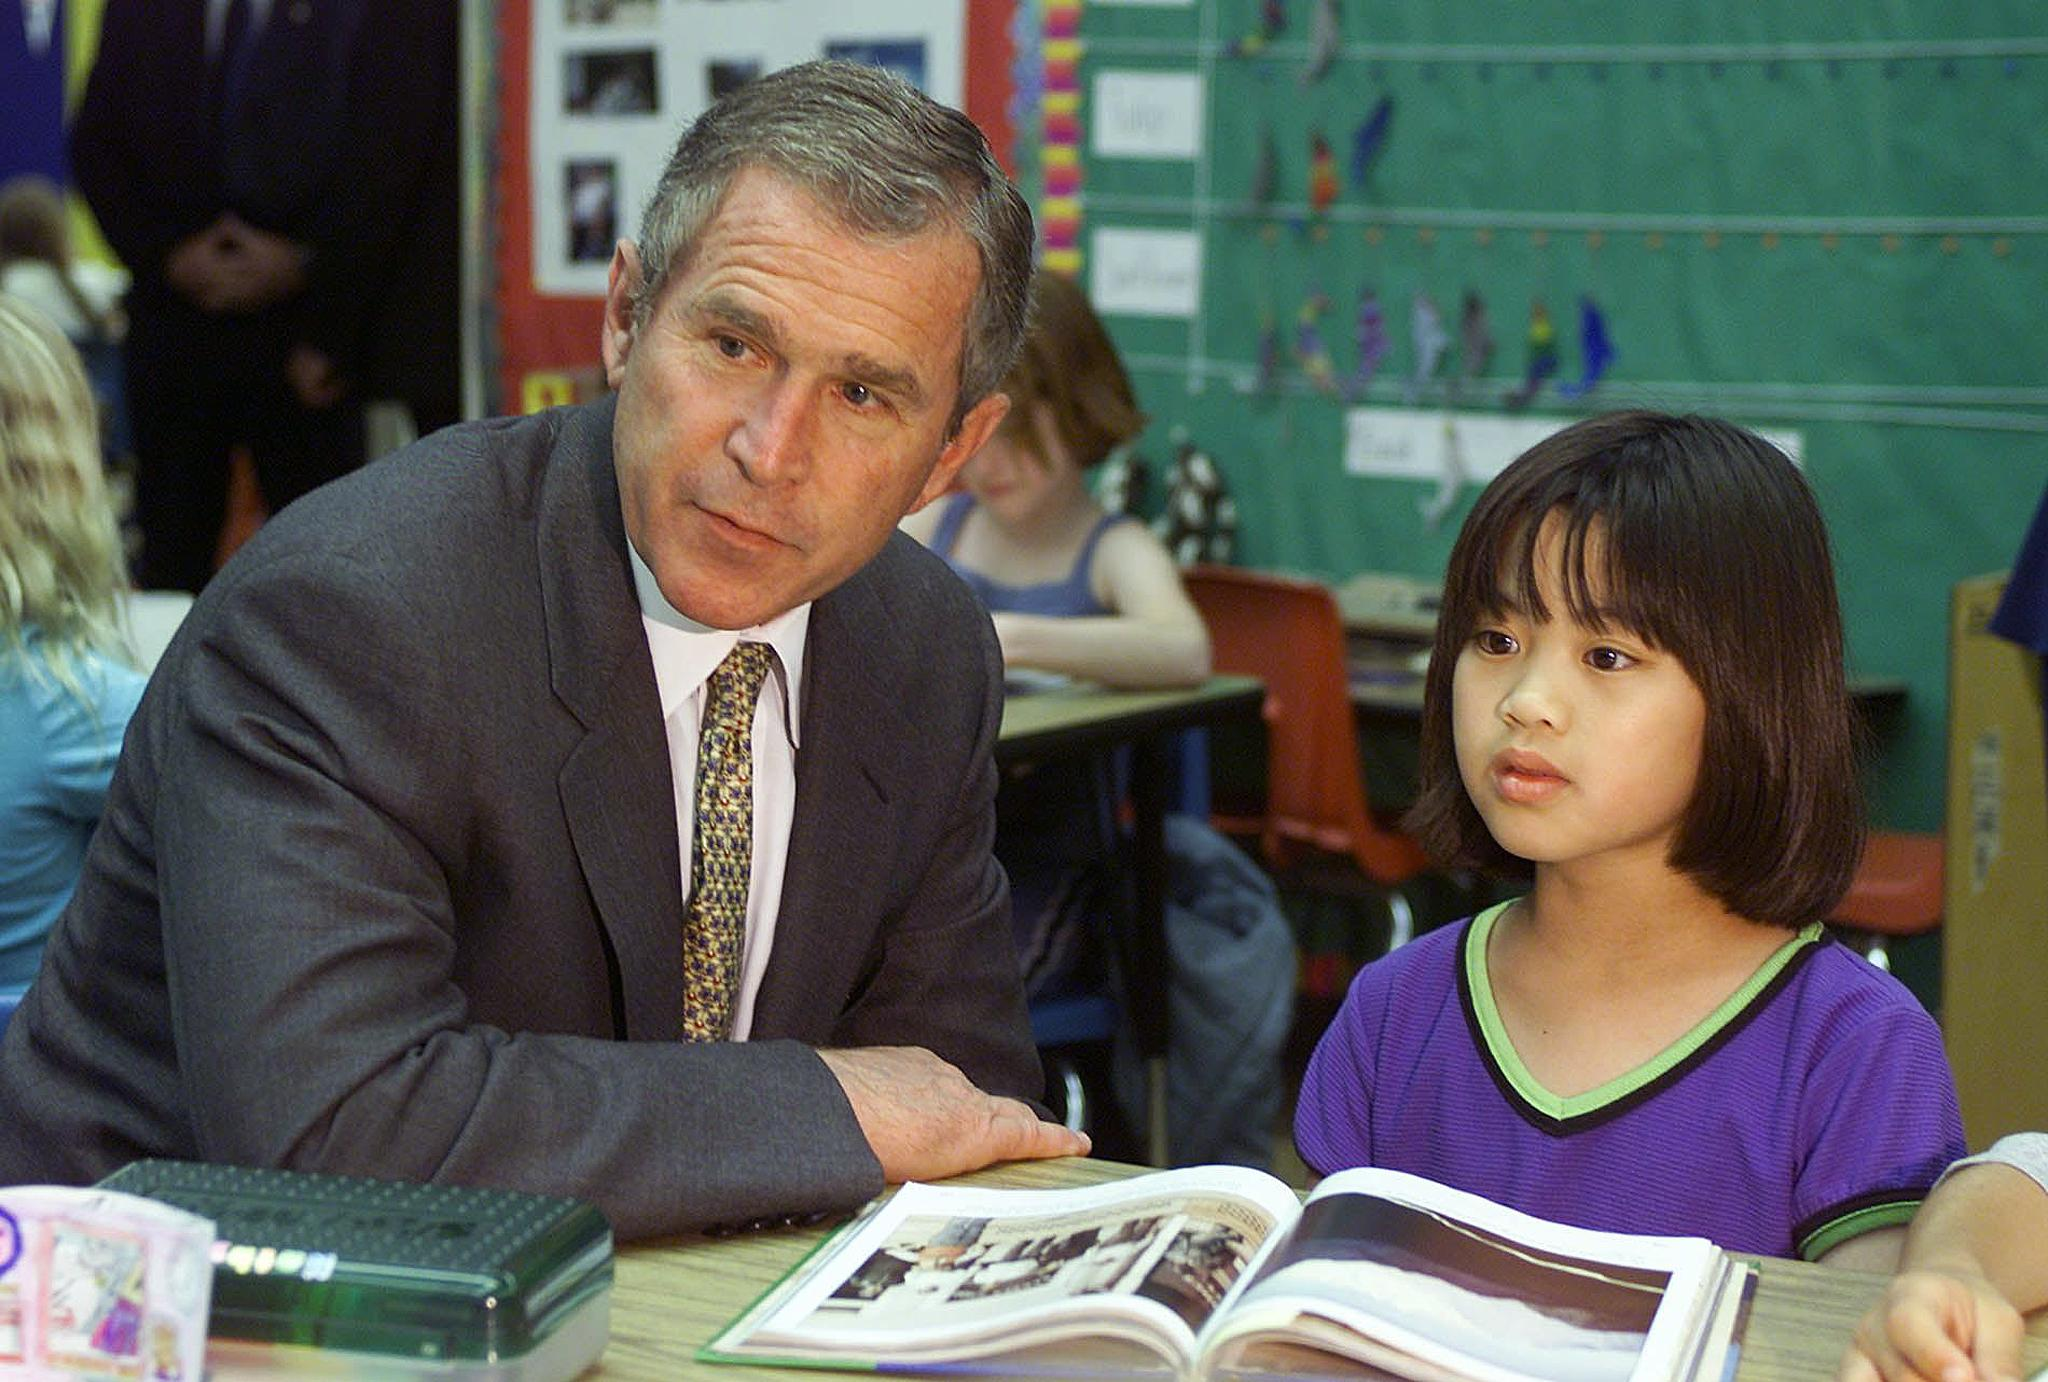 What is your take on the no child left behind movement going on under GWB?